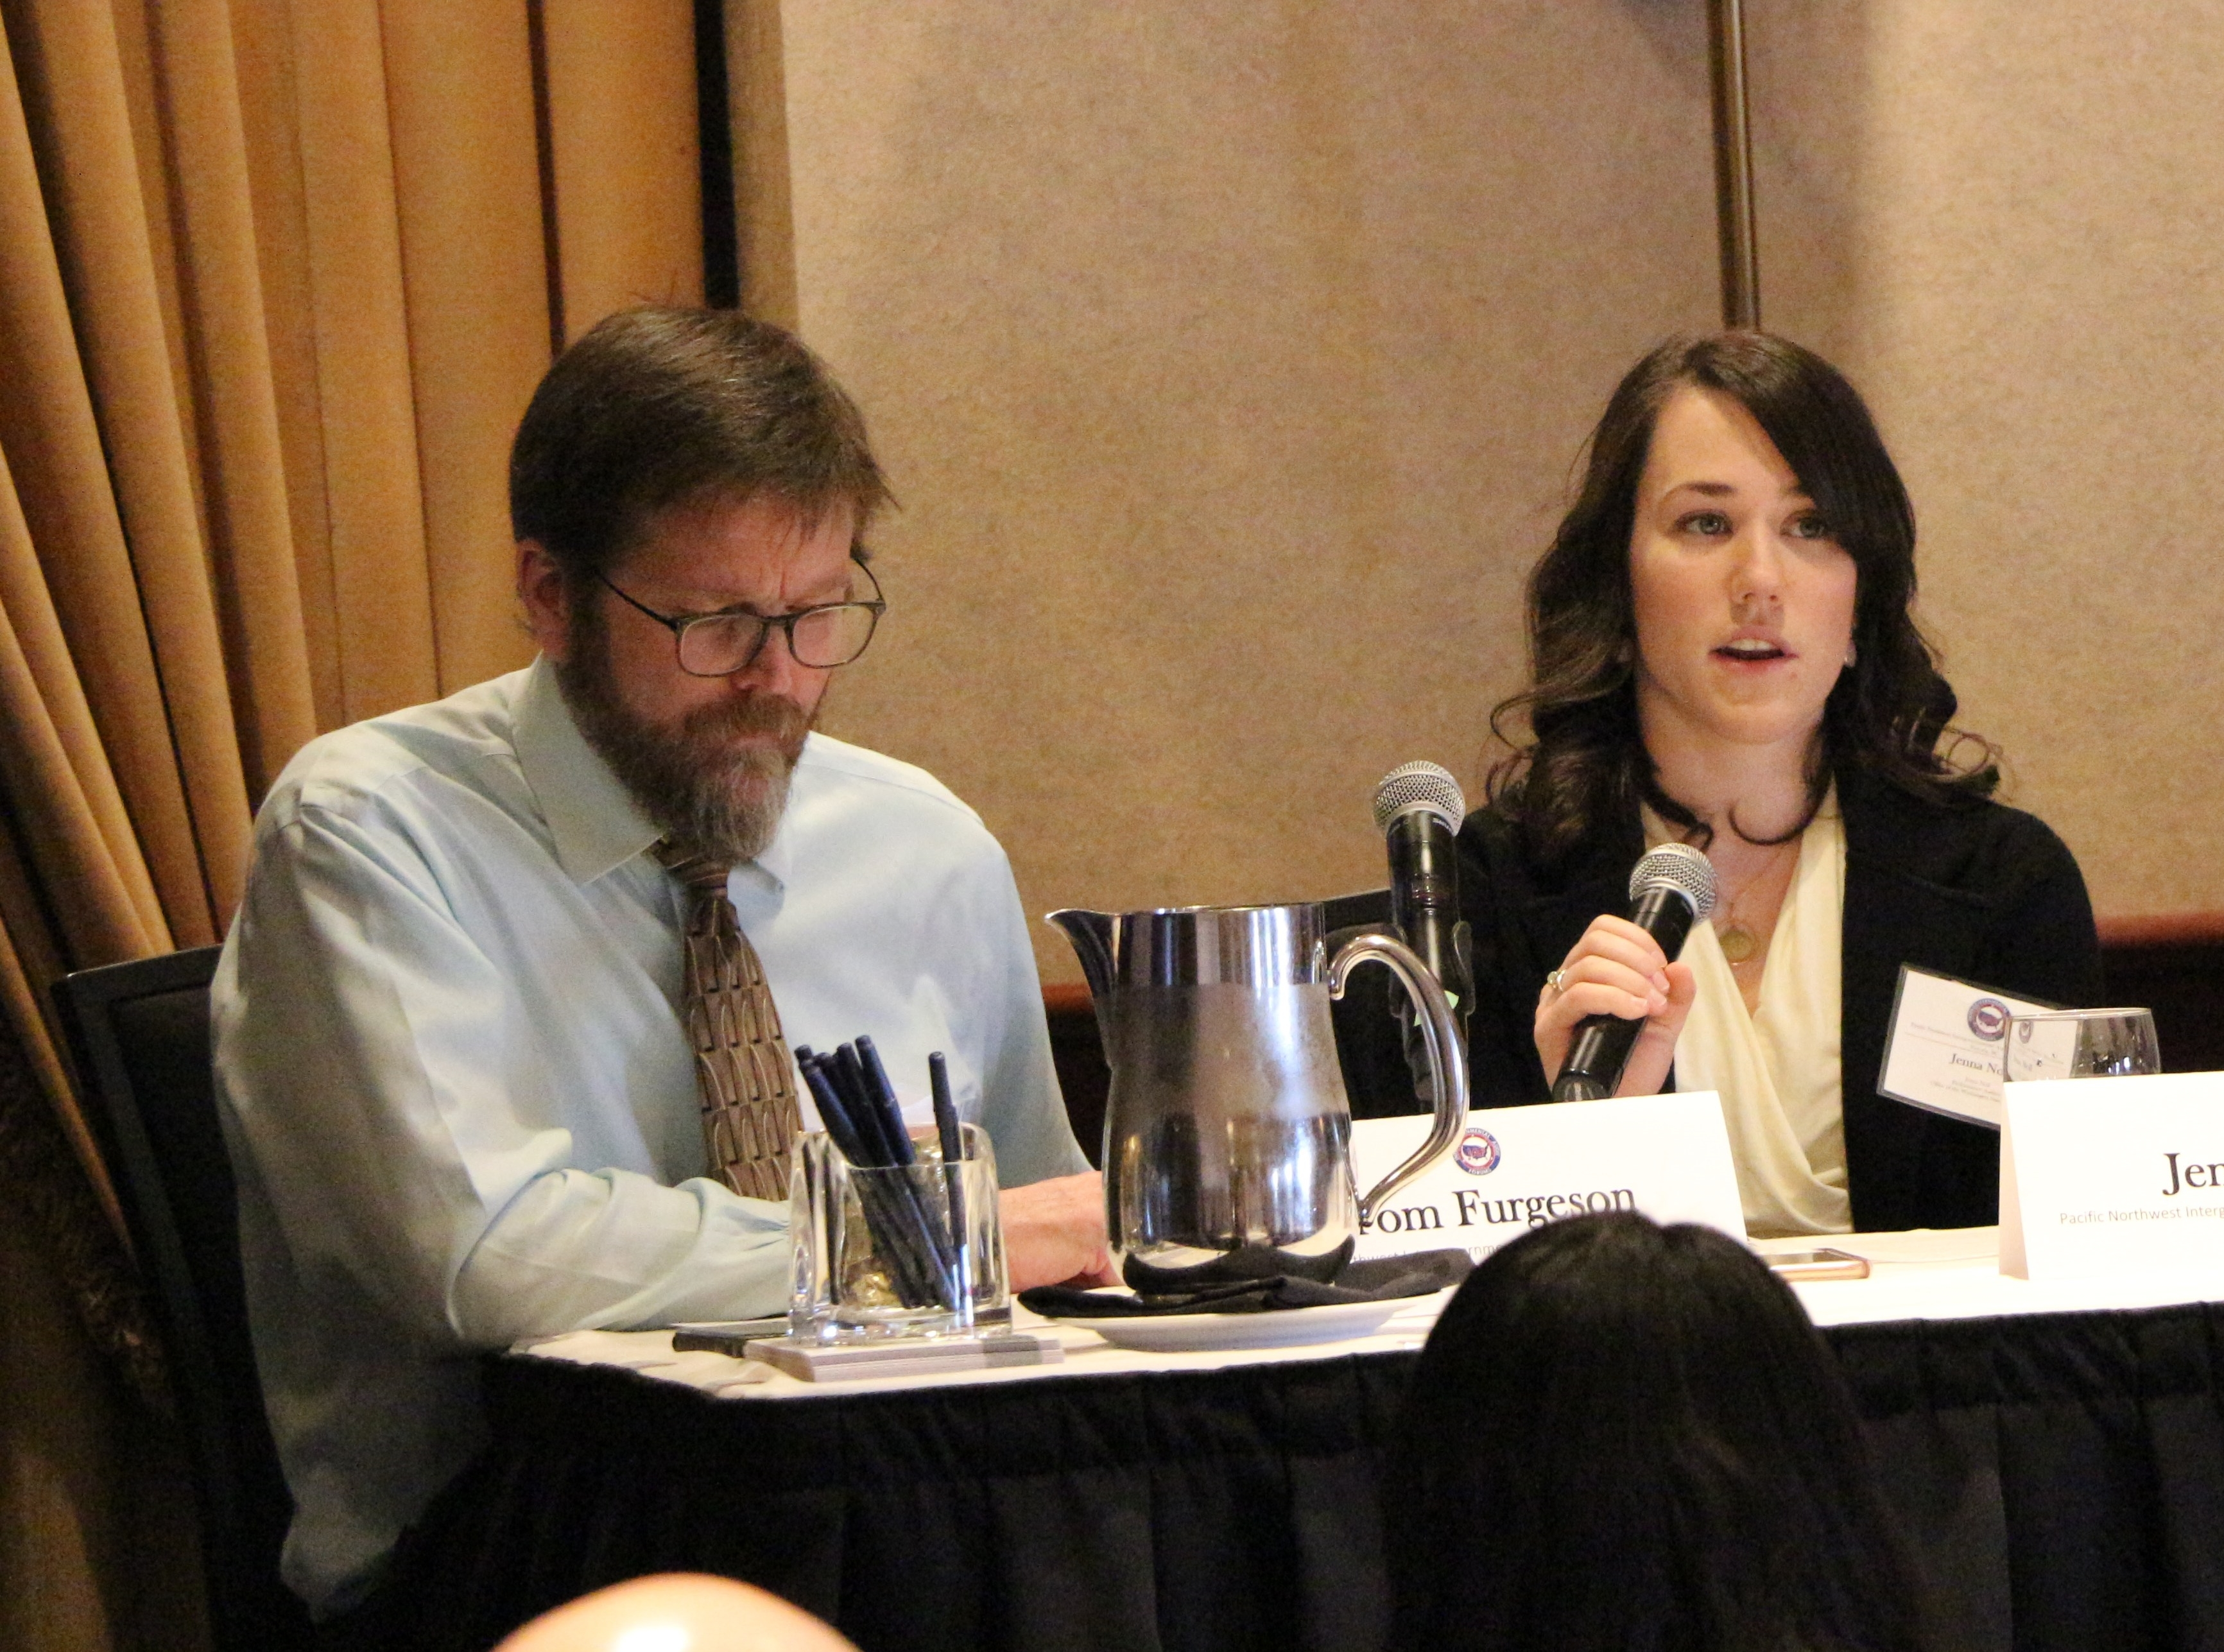 Performance auditor Jenna Noll speaks during a presentation at the Pacific Northwest Intergovernmental Auditors Forum March 16 at Victoria, B.C. Assistant Director for Performance Audit Tom Furgeson is shown at left.